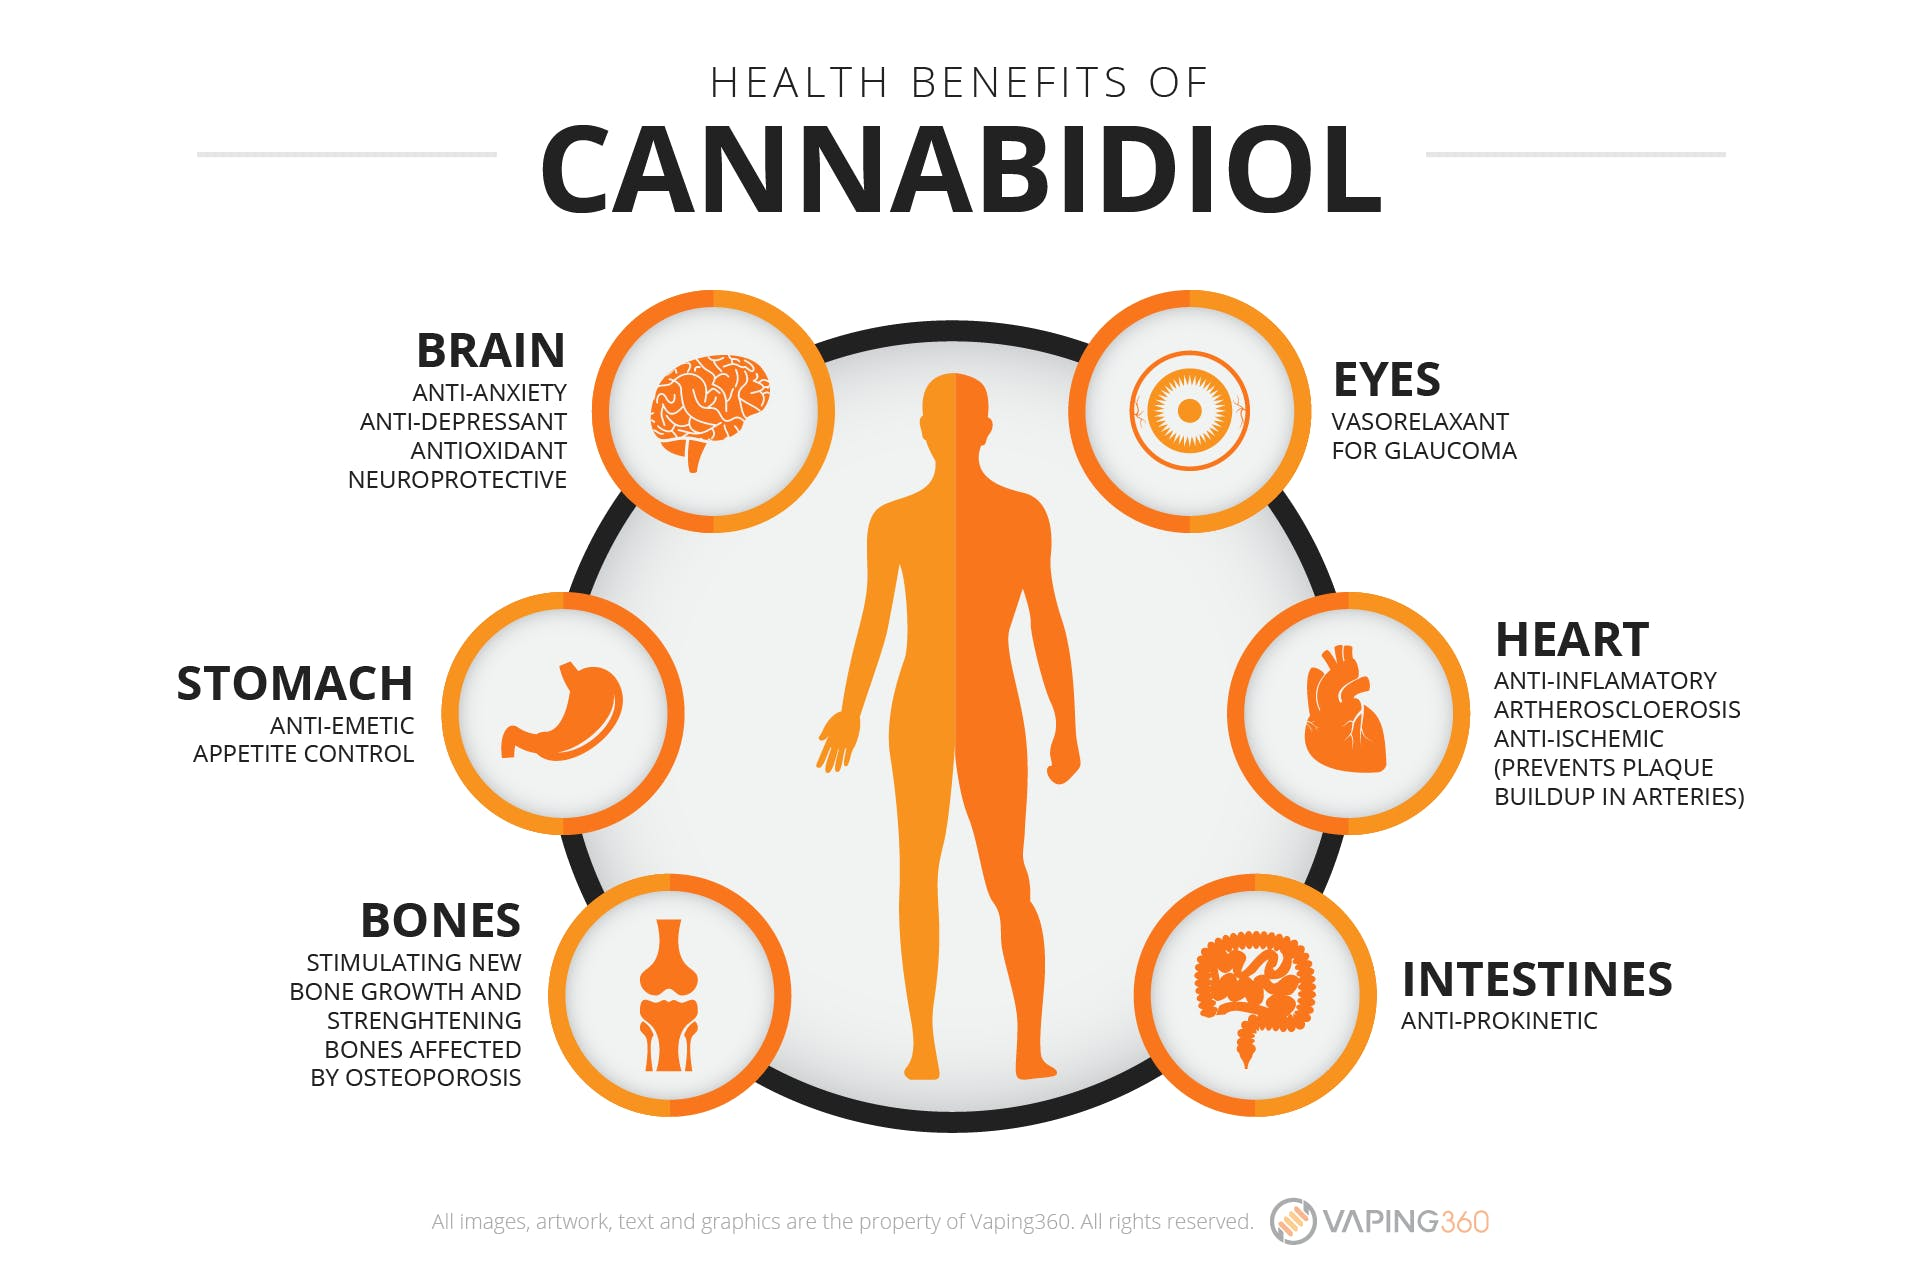 Health Benefits of Cannabidiol-Infographic